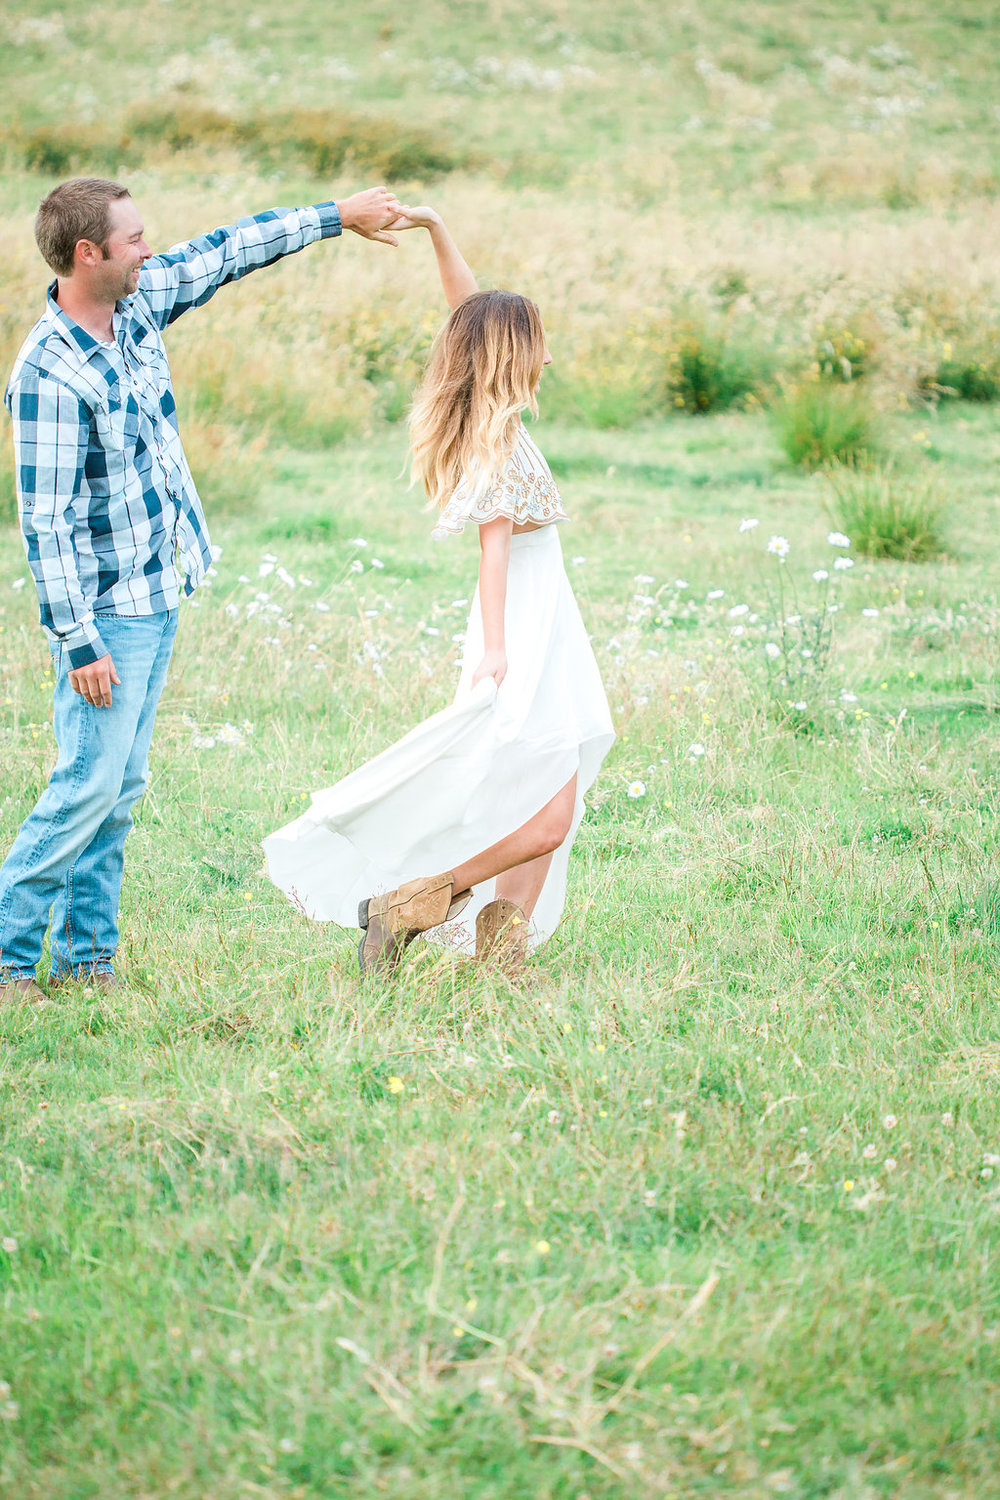 Beautiful outdoor engagement session | What to wear | Photo Inspiration | Engagement session | Portrait | White | Detail Shots | Mastin Labs | Engaged | Fuji 400 | Dancing | Couple Dancing in Field